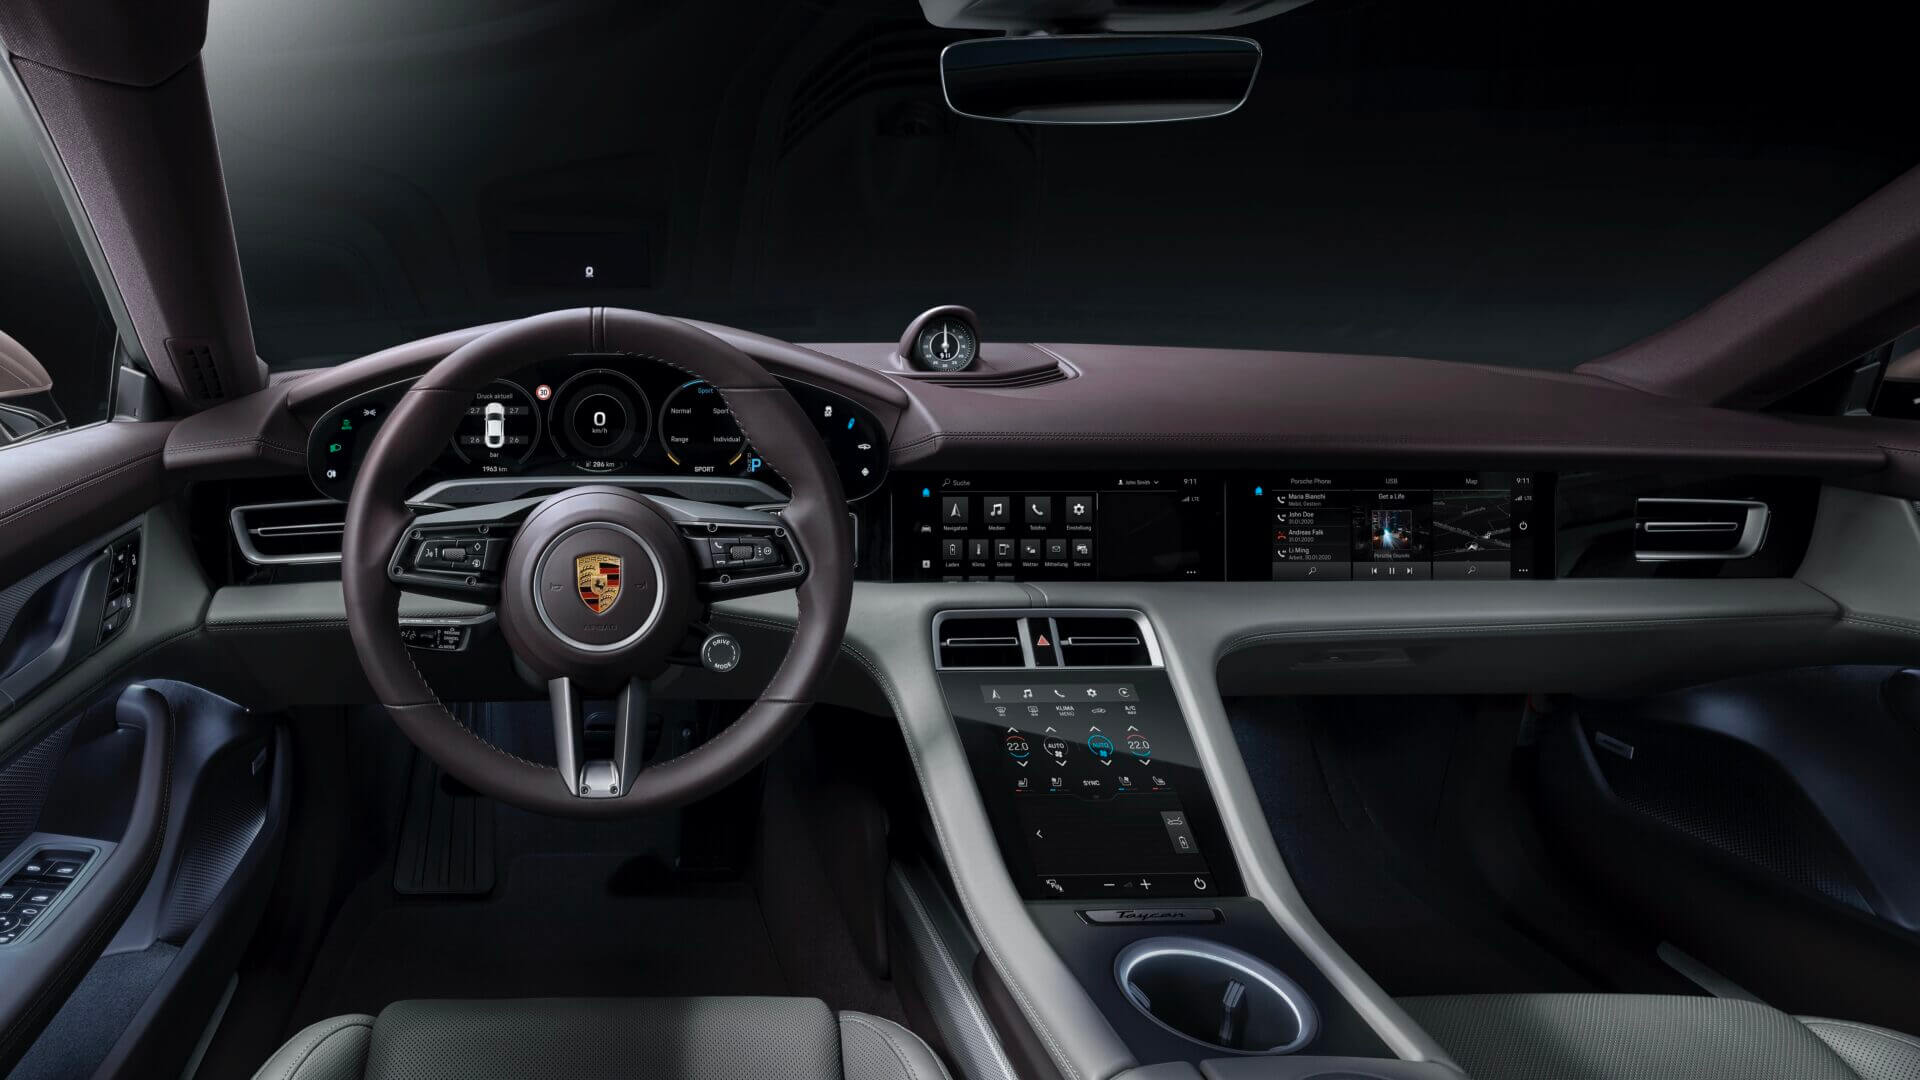 Porsche Taycan gets a new rear-drive model that's the most affordable by far